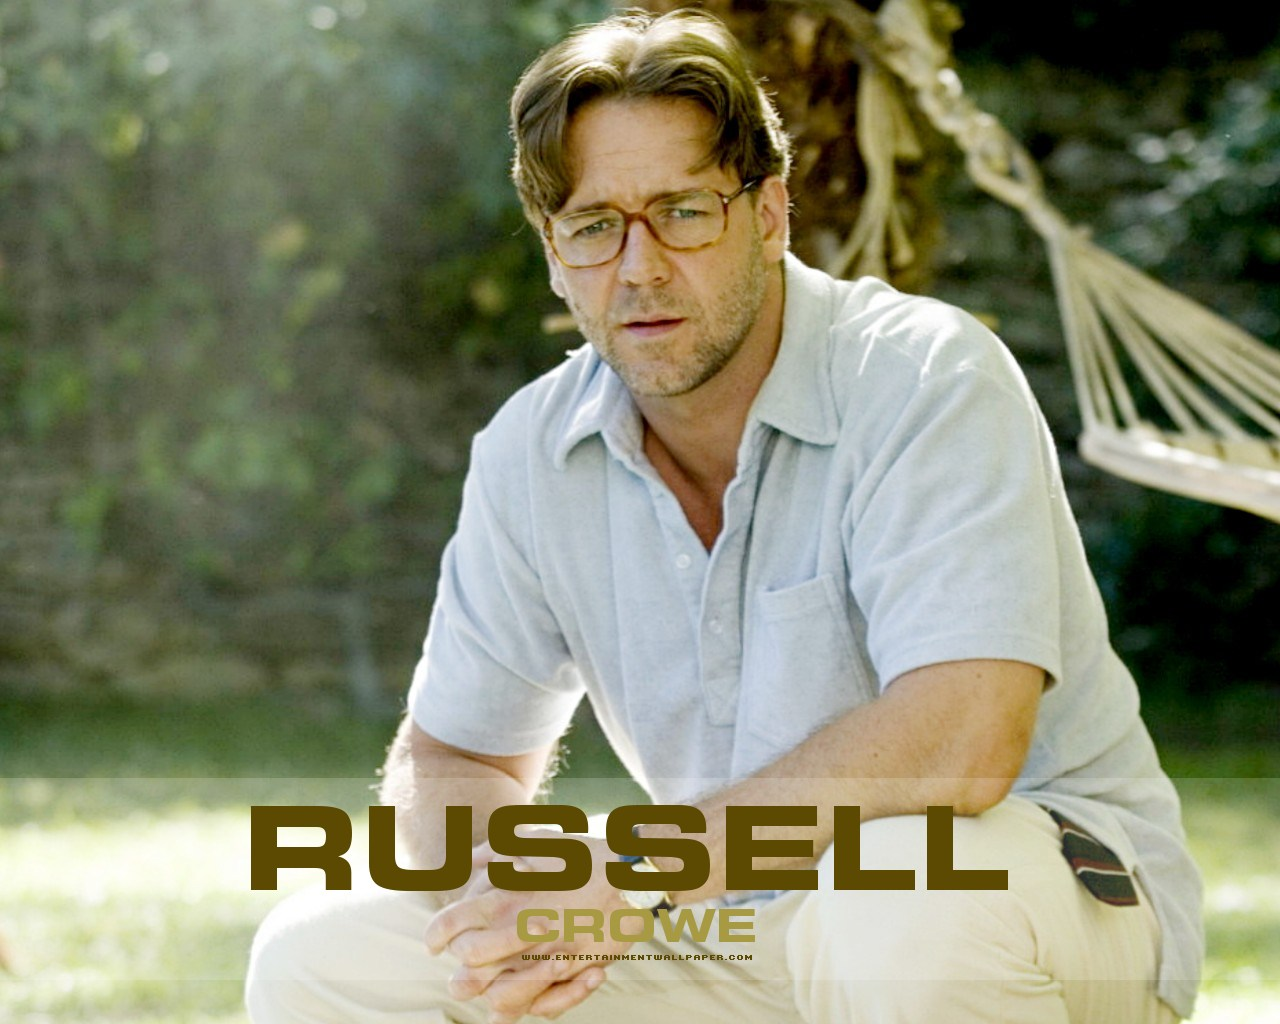 1280x1024 - Russell Crowe Wallpapers 27